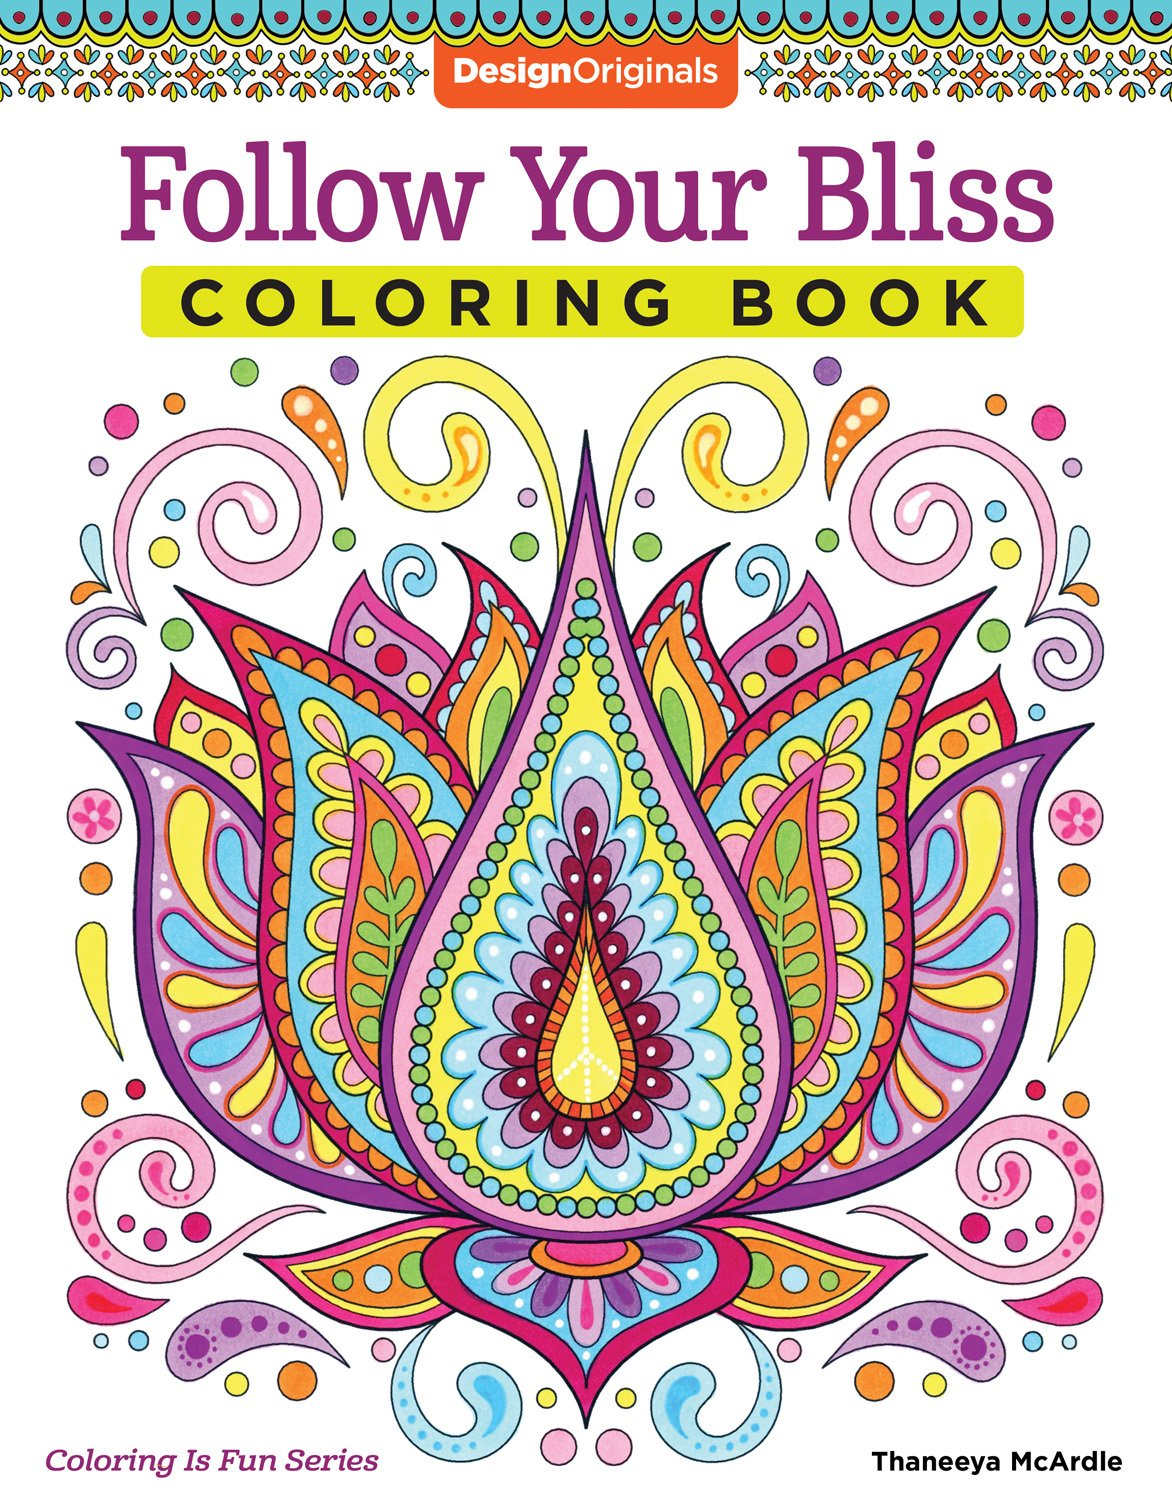 Lotus designs coloring book - Amazon Com Follow Your Bliss Coloring Book Coloring Activity Book Design Originals Coloring Is Fun 0499994340788 Thaneeya Mcardle Books